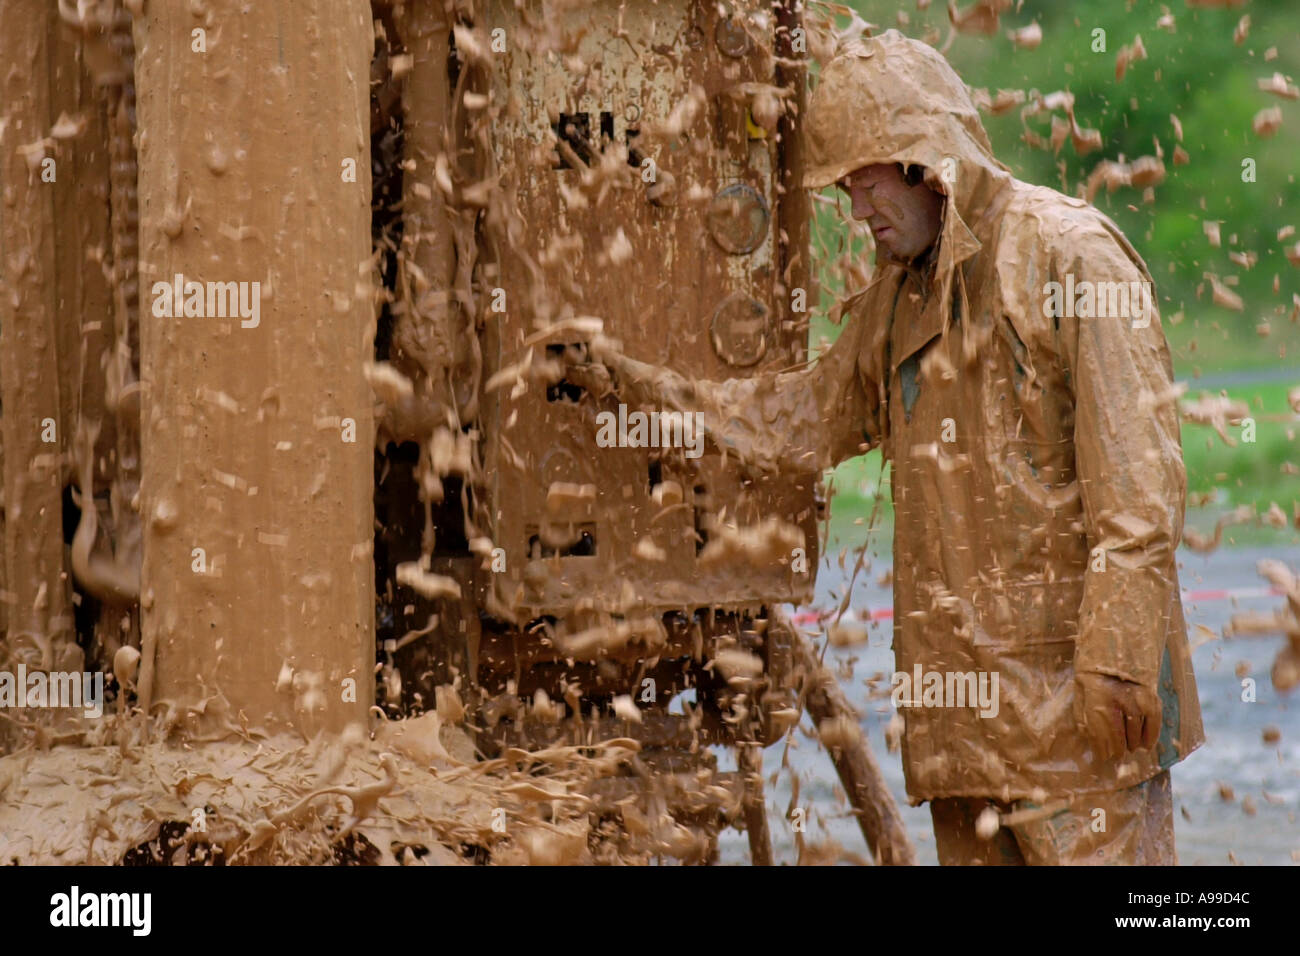 engineer-covered-in-foam-and-mud-while-drilling-for-water-at-the-gwalia-A99D4C.jpg